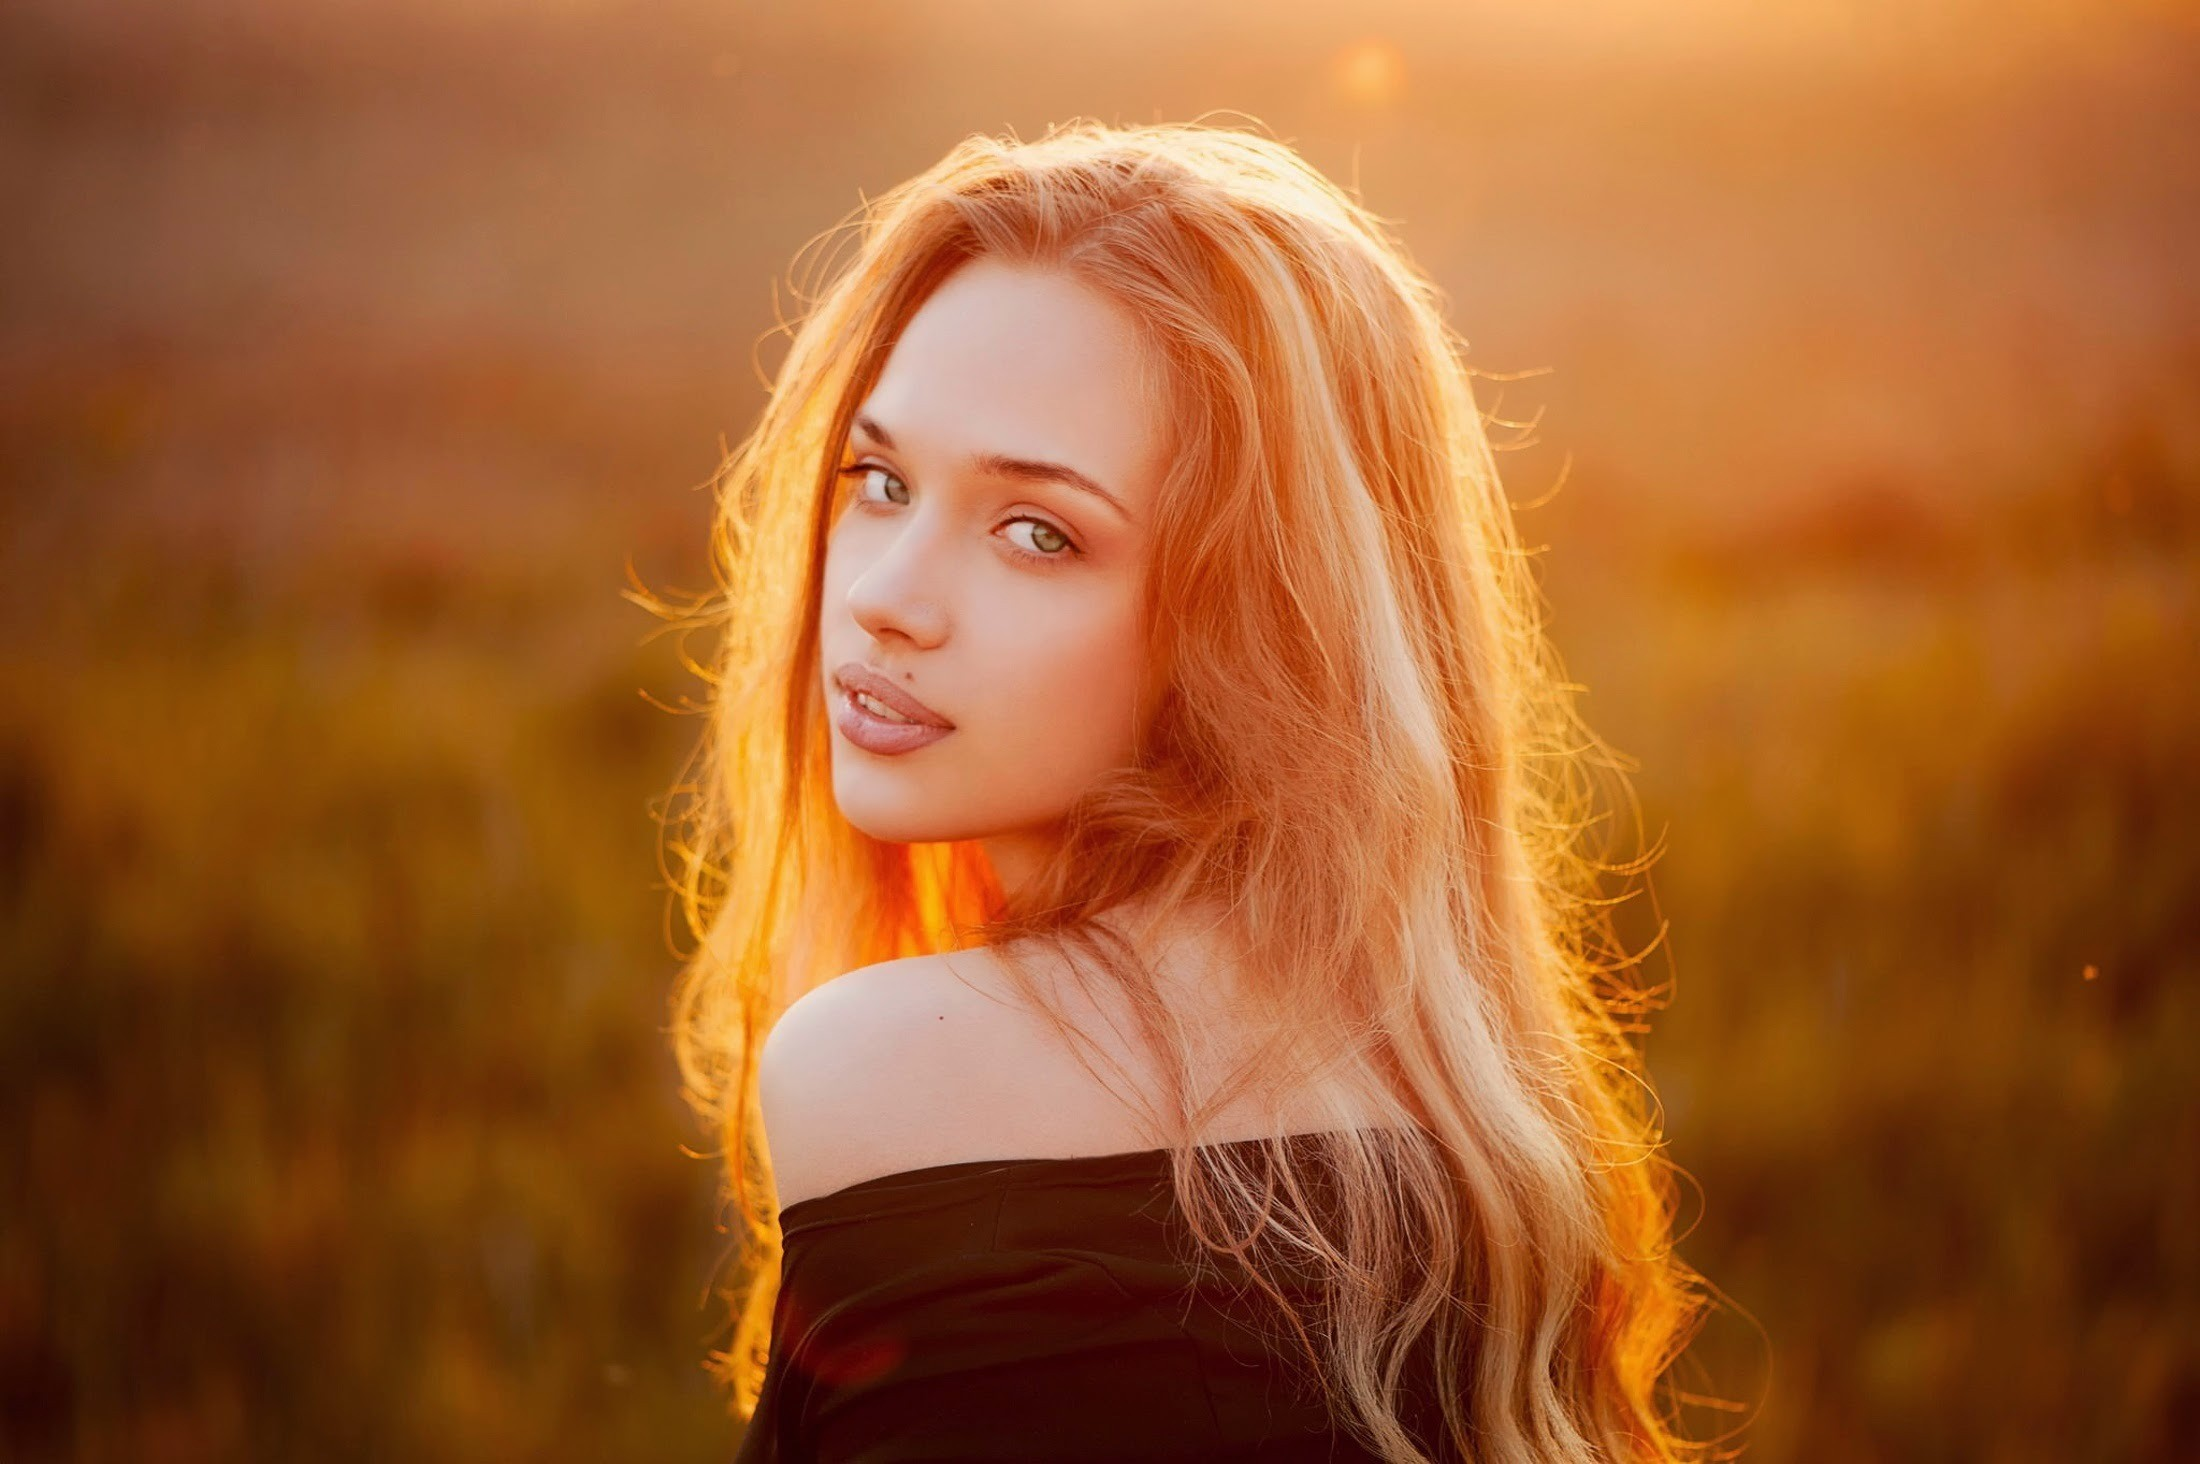 the Beauty of the Strawberry Blonde